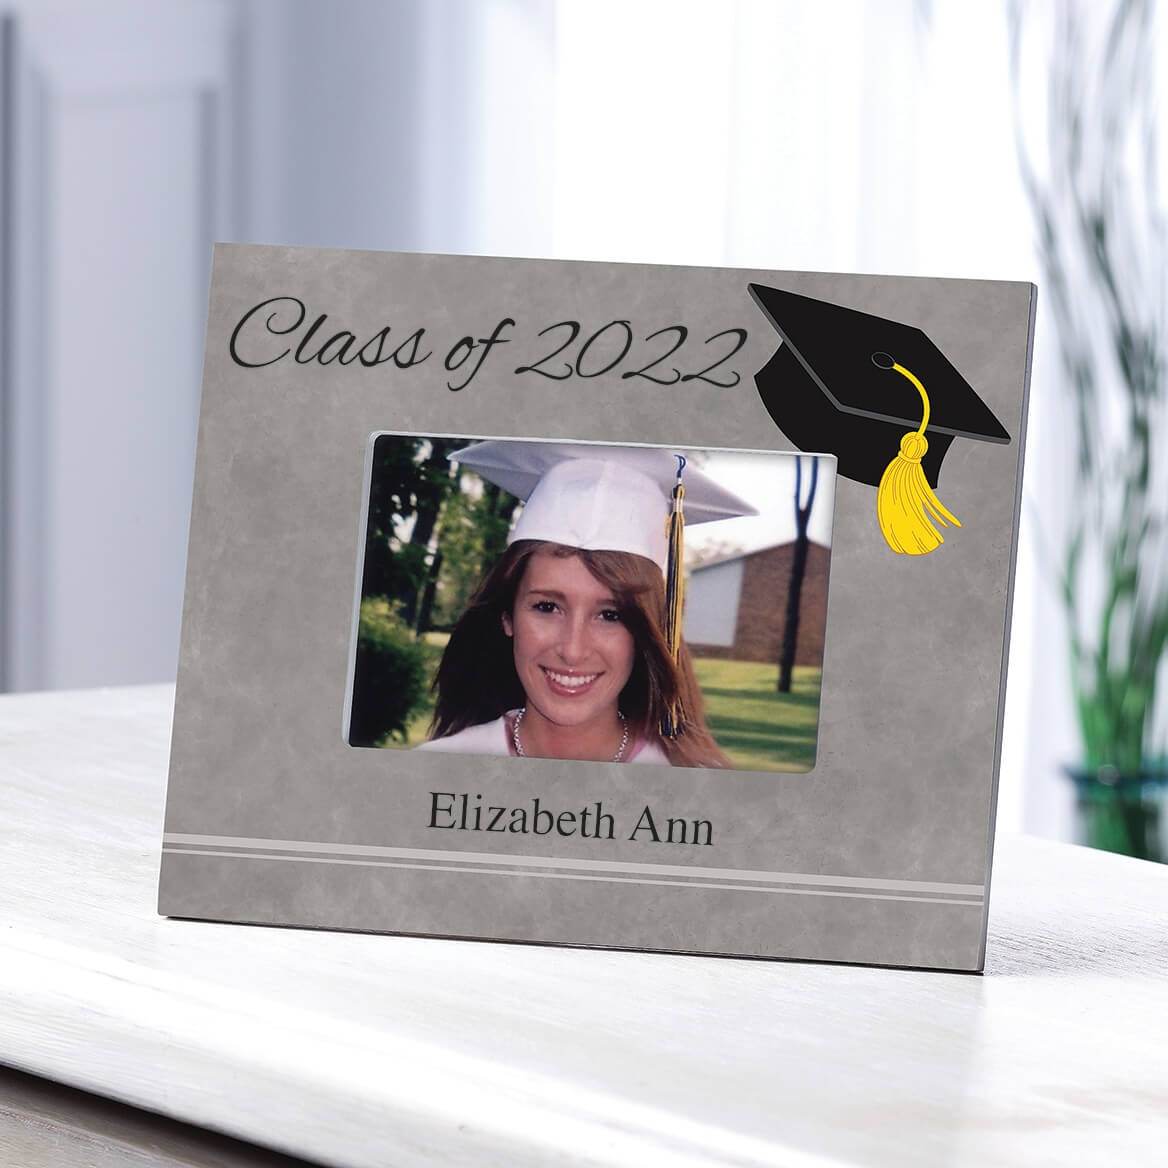 Personalized 2019 Graduation Frame Horizontal-361269 Personalized 2019 Graduation Frame Horizontal-361269